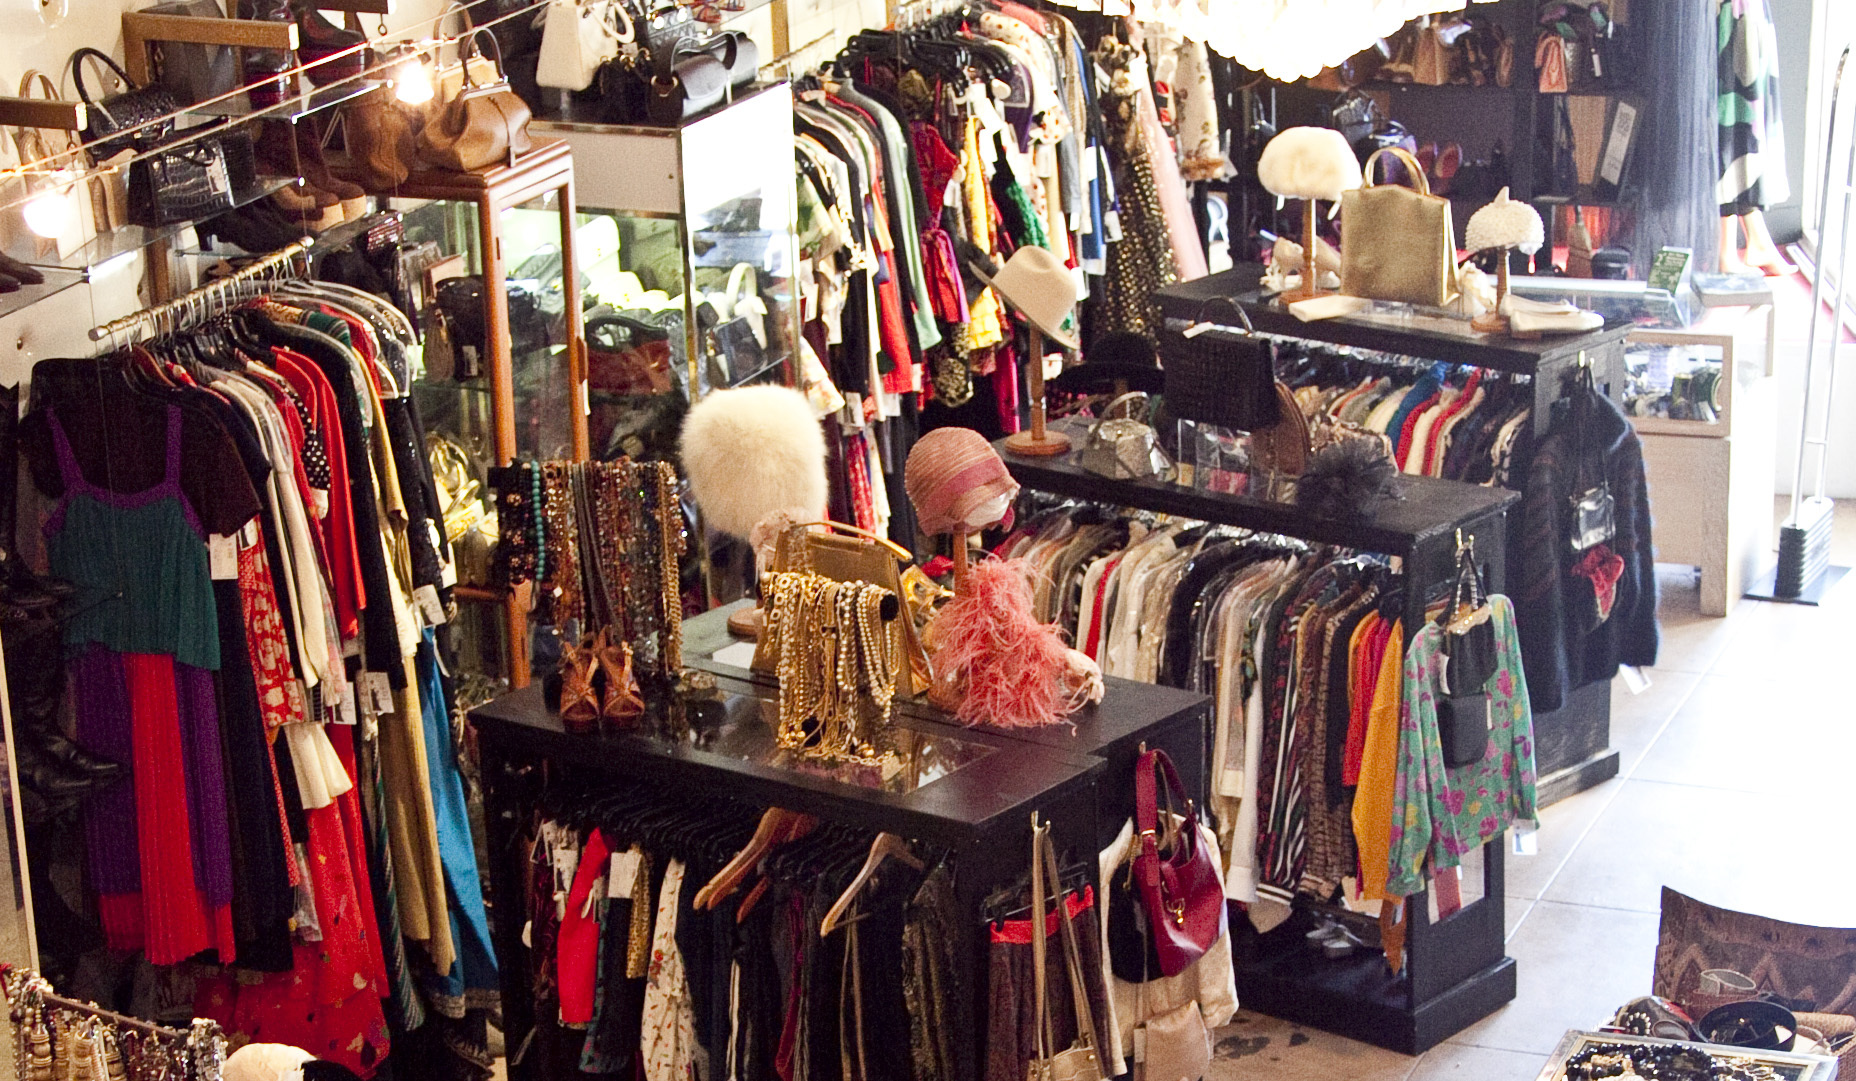 aac467d83fa The best places for vintage clothing in Los Angeles